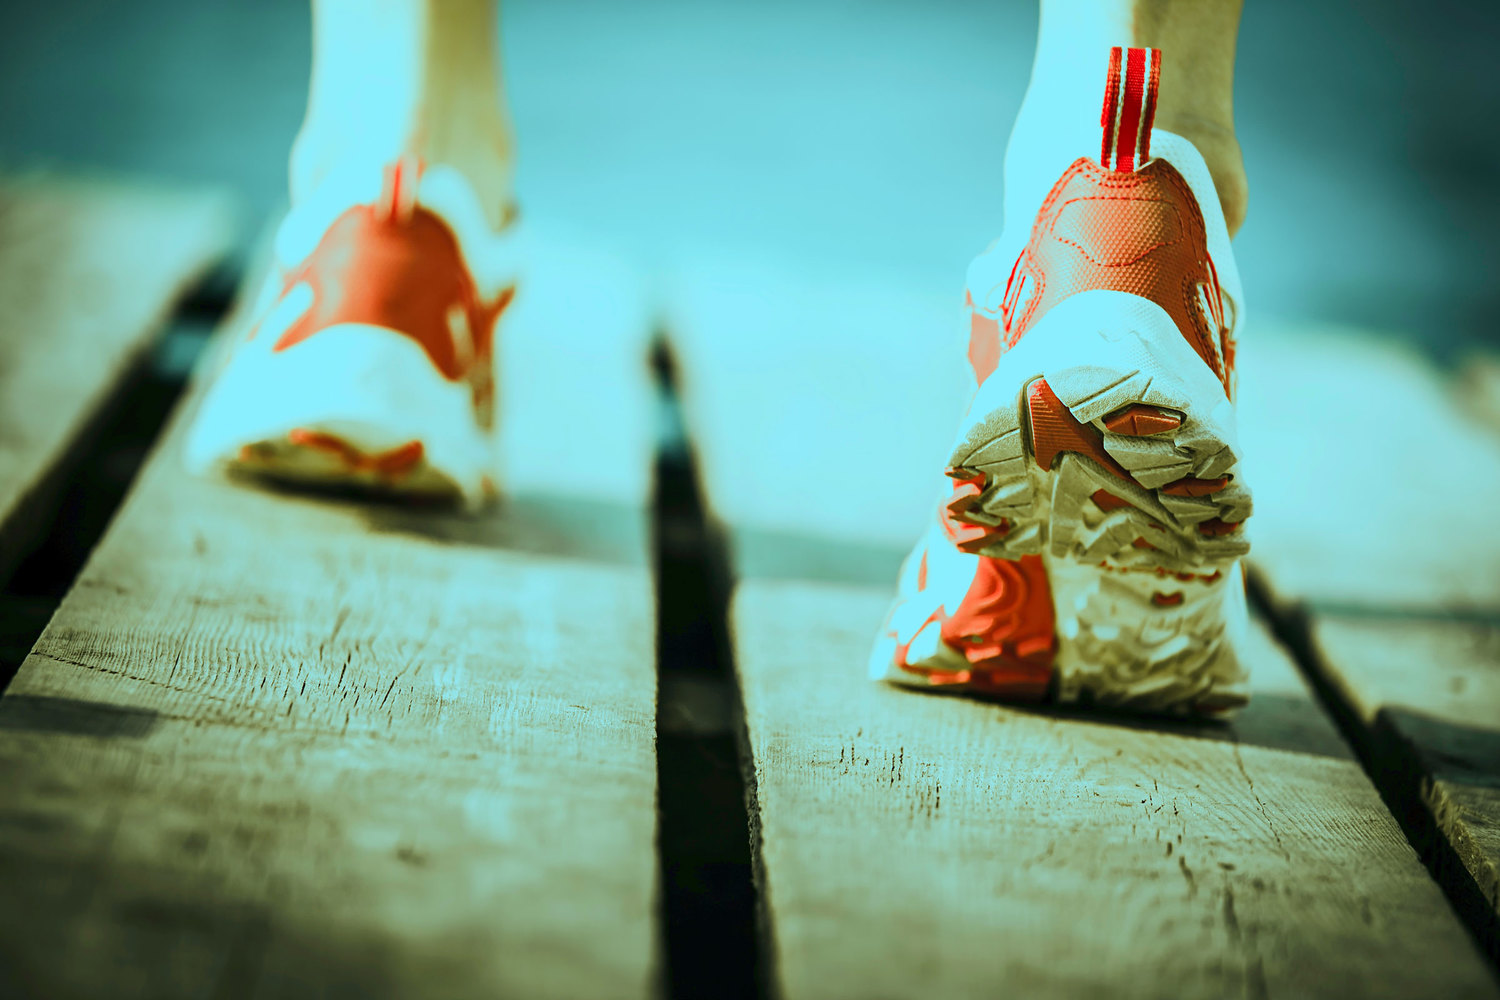 Increase your running load by 10% to prevent injury